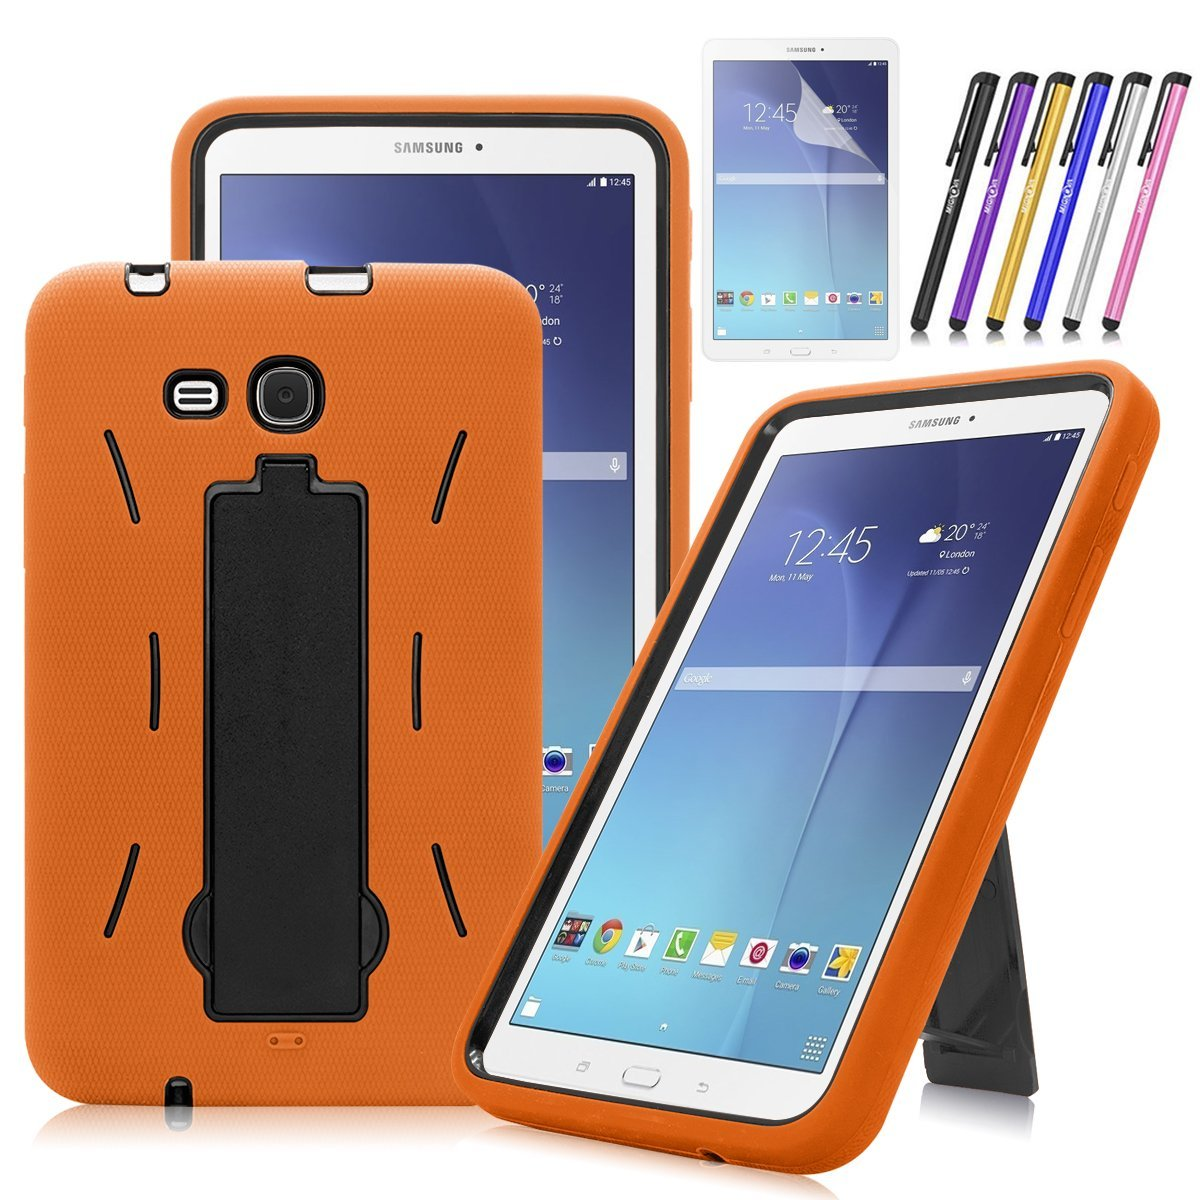 Mignova Heavy Duty Hybrid Protective Case with Kickstand Impact Resistant For Samsung Galaxy Tab E 8.0 SM-T377 + Screen Protector Film and stylus pen (Black)